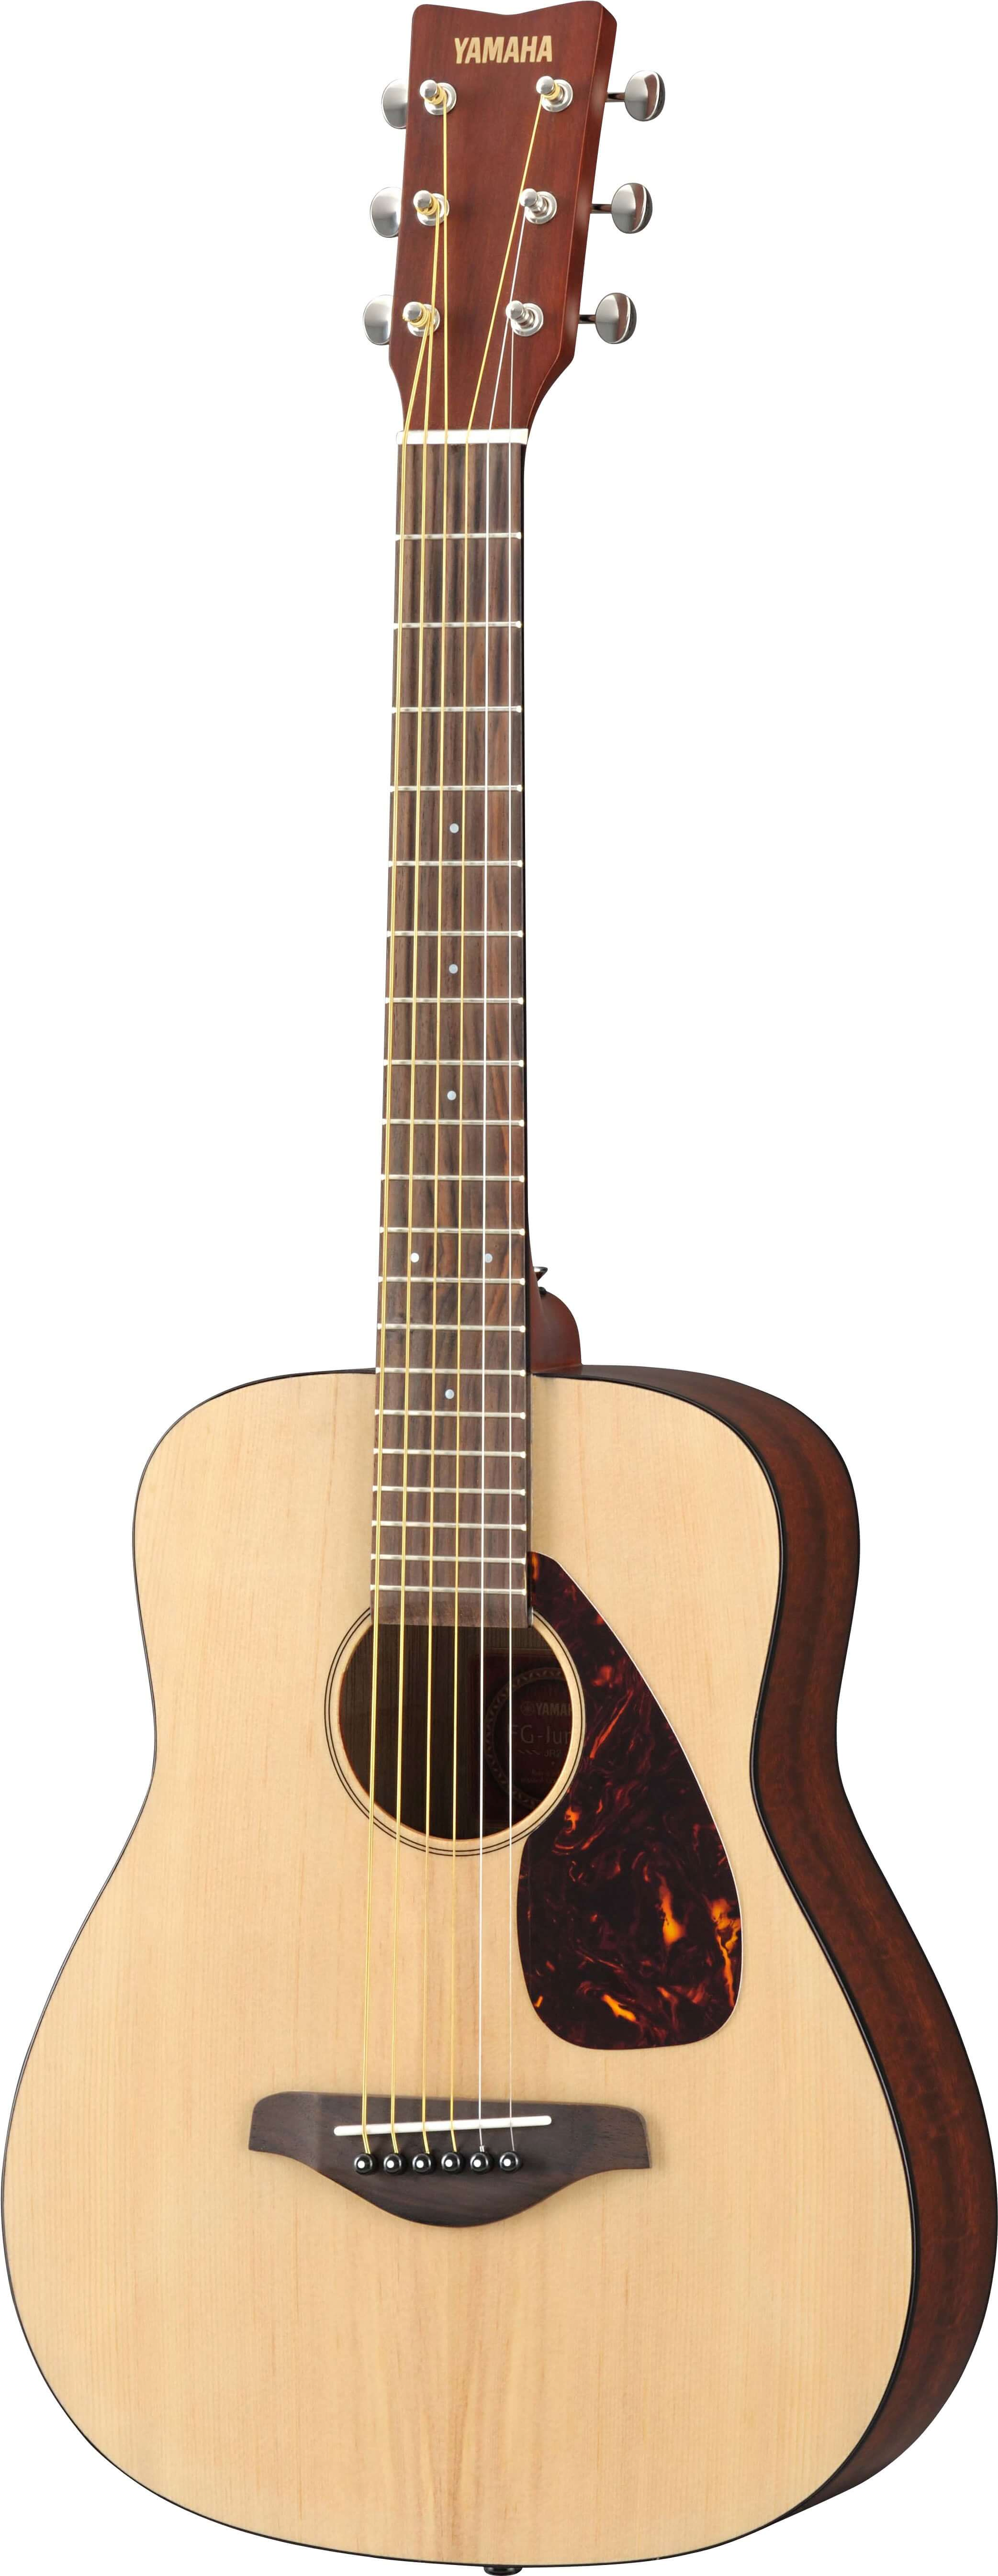 Guitarra Acústica Yamaha Jr2 Tobacco Brown Sb